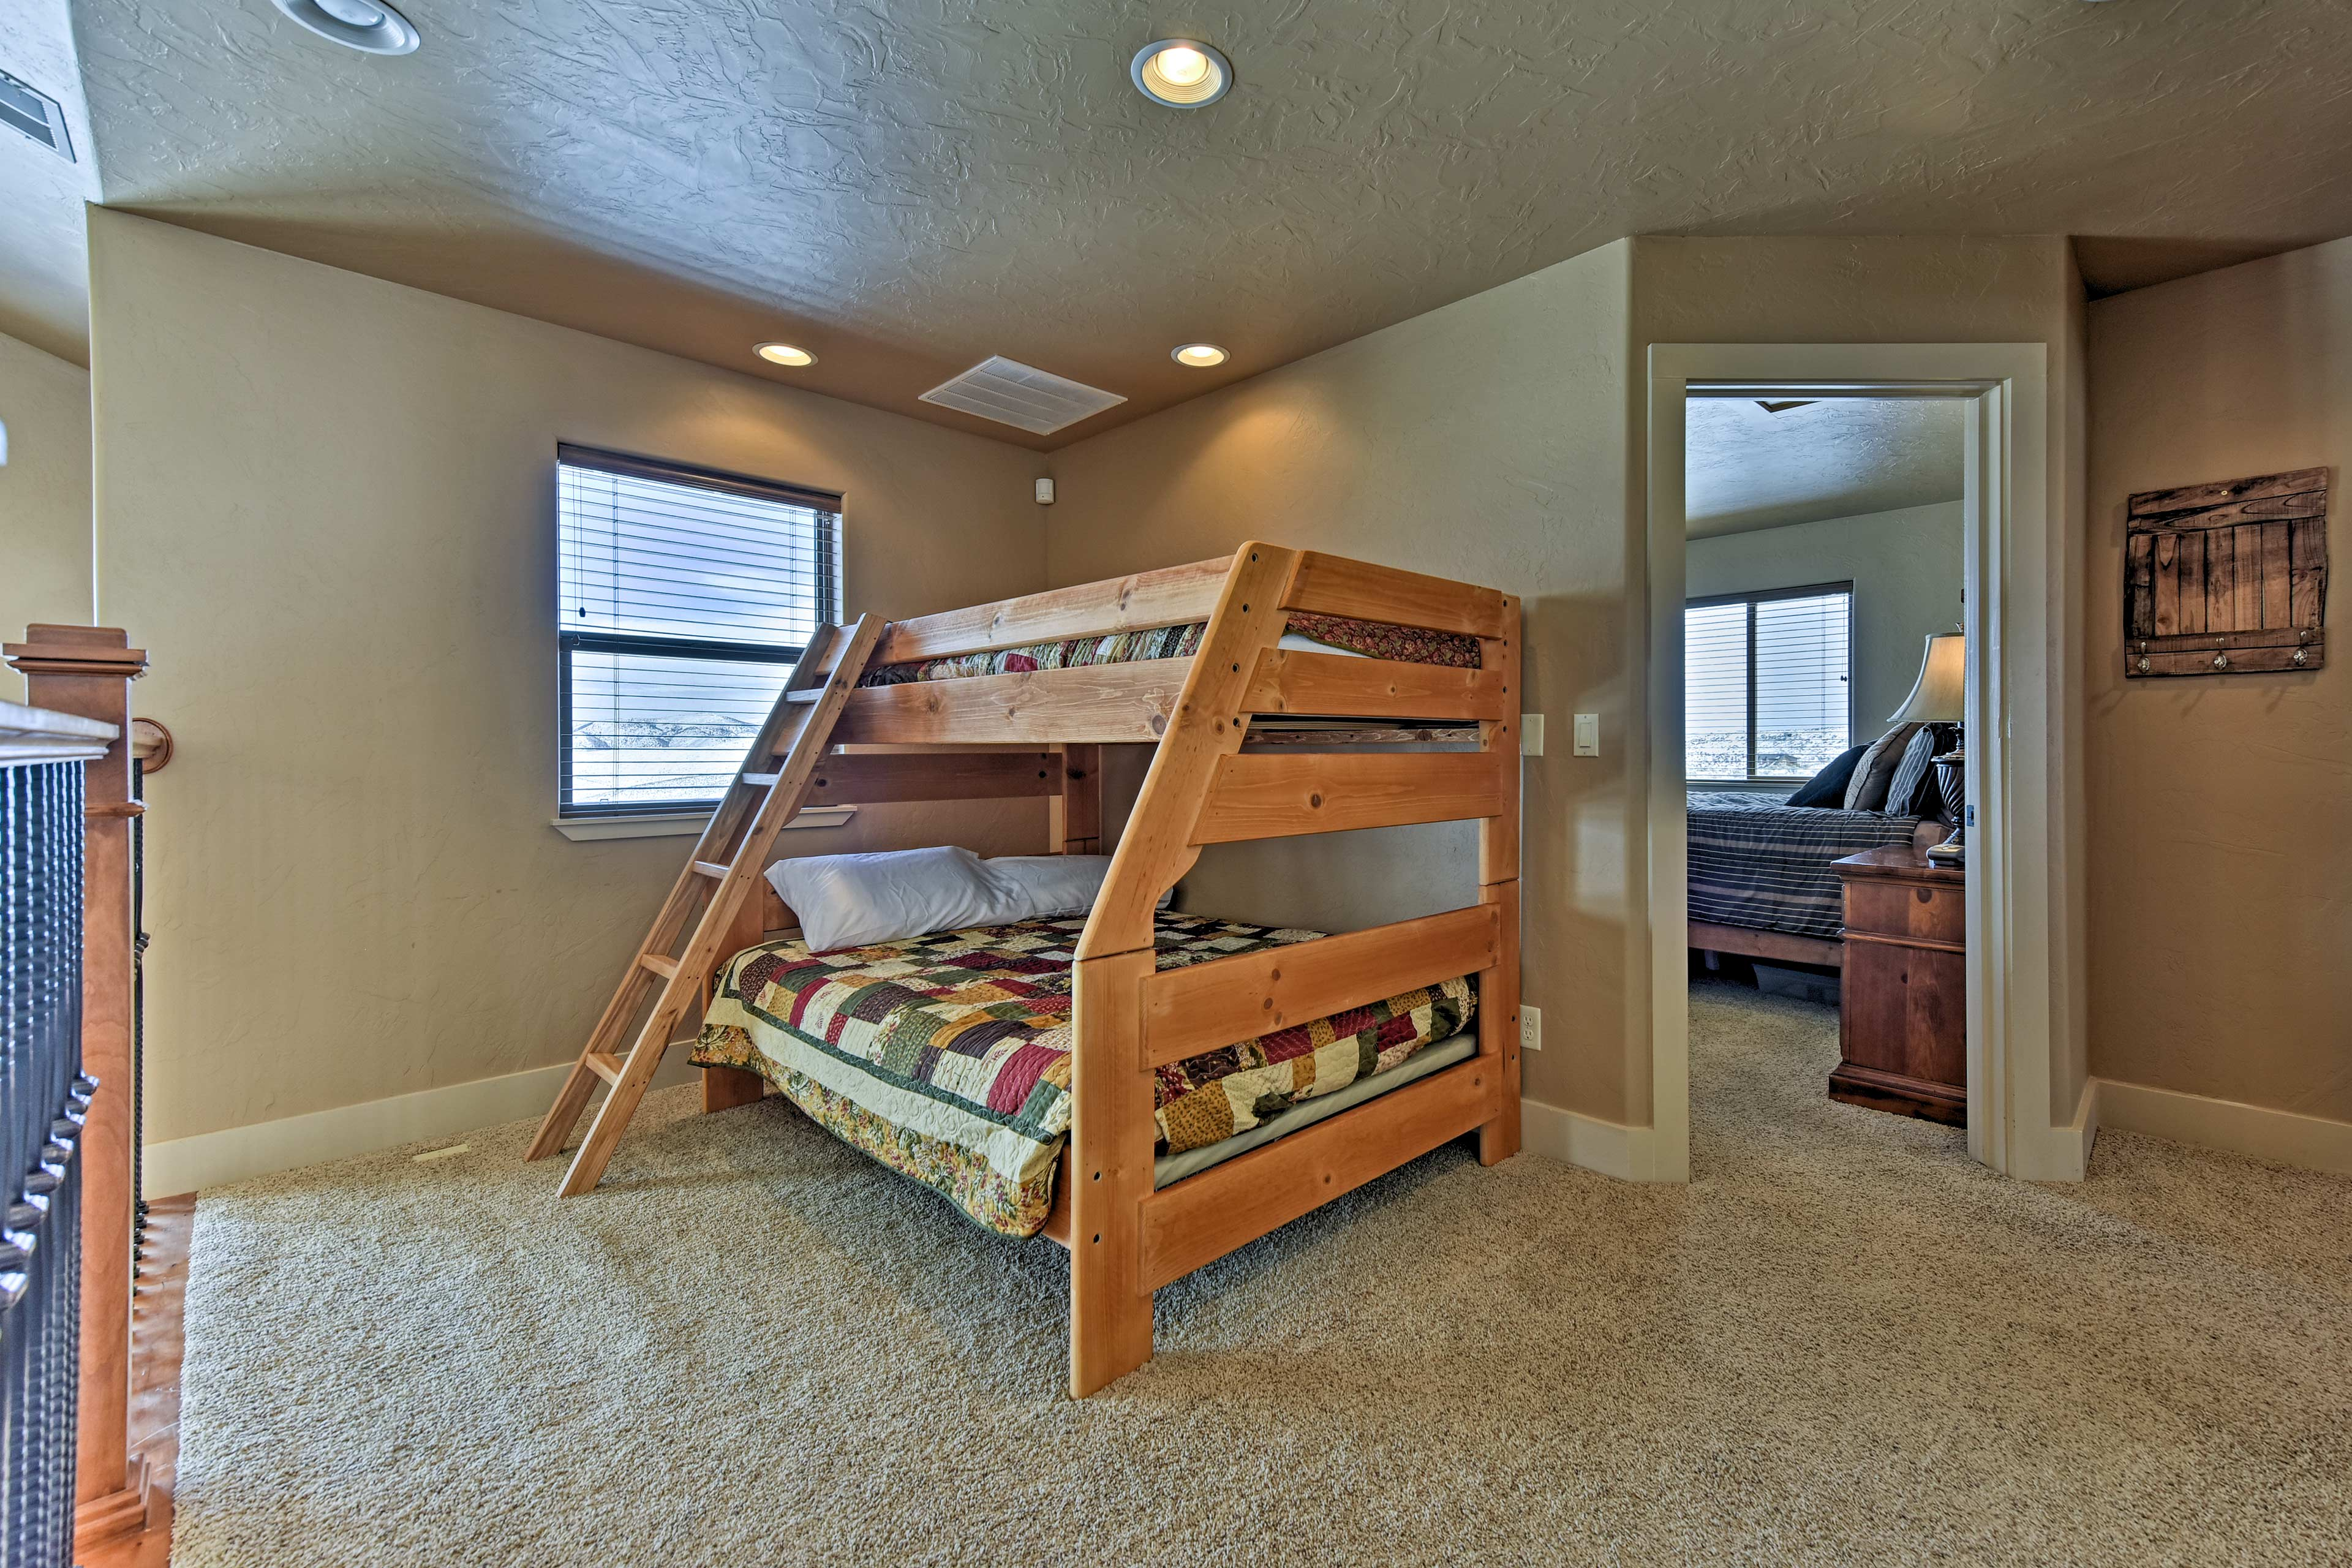 The loft includes a twin-over-full bunk bed.